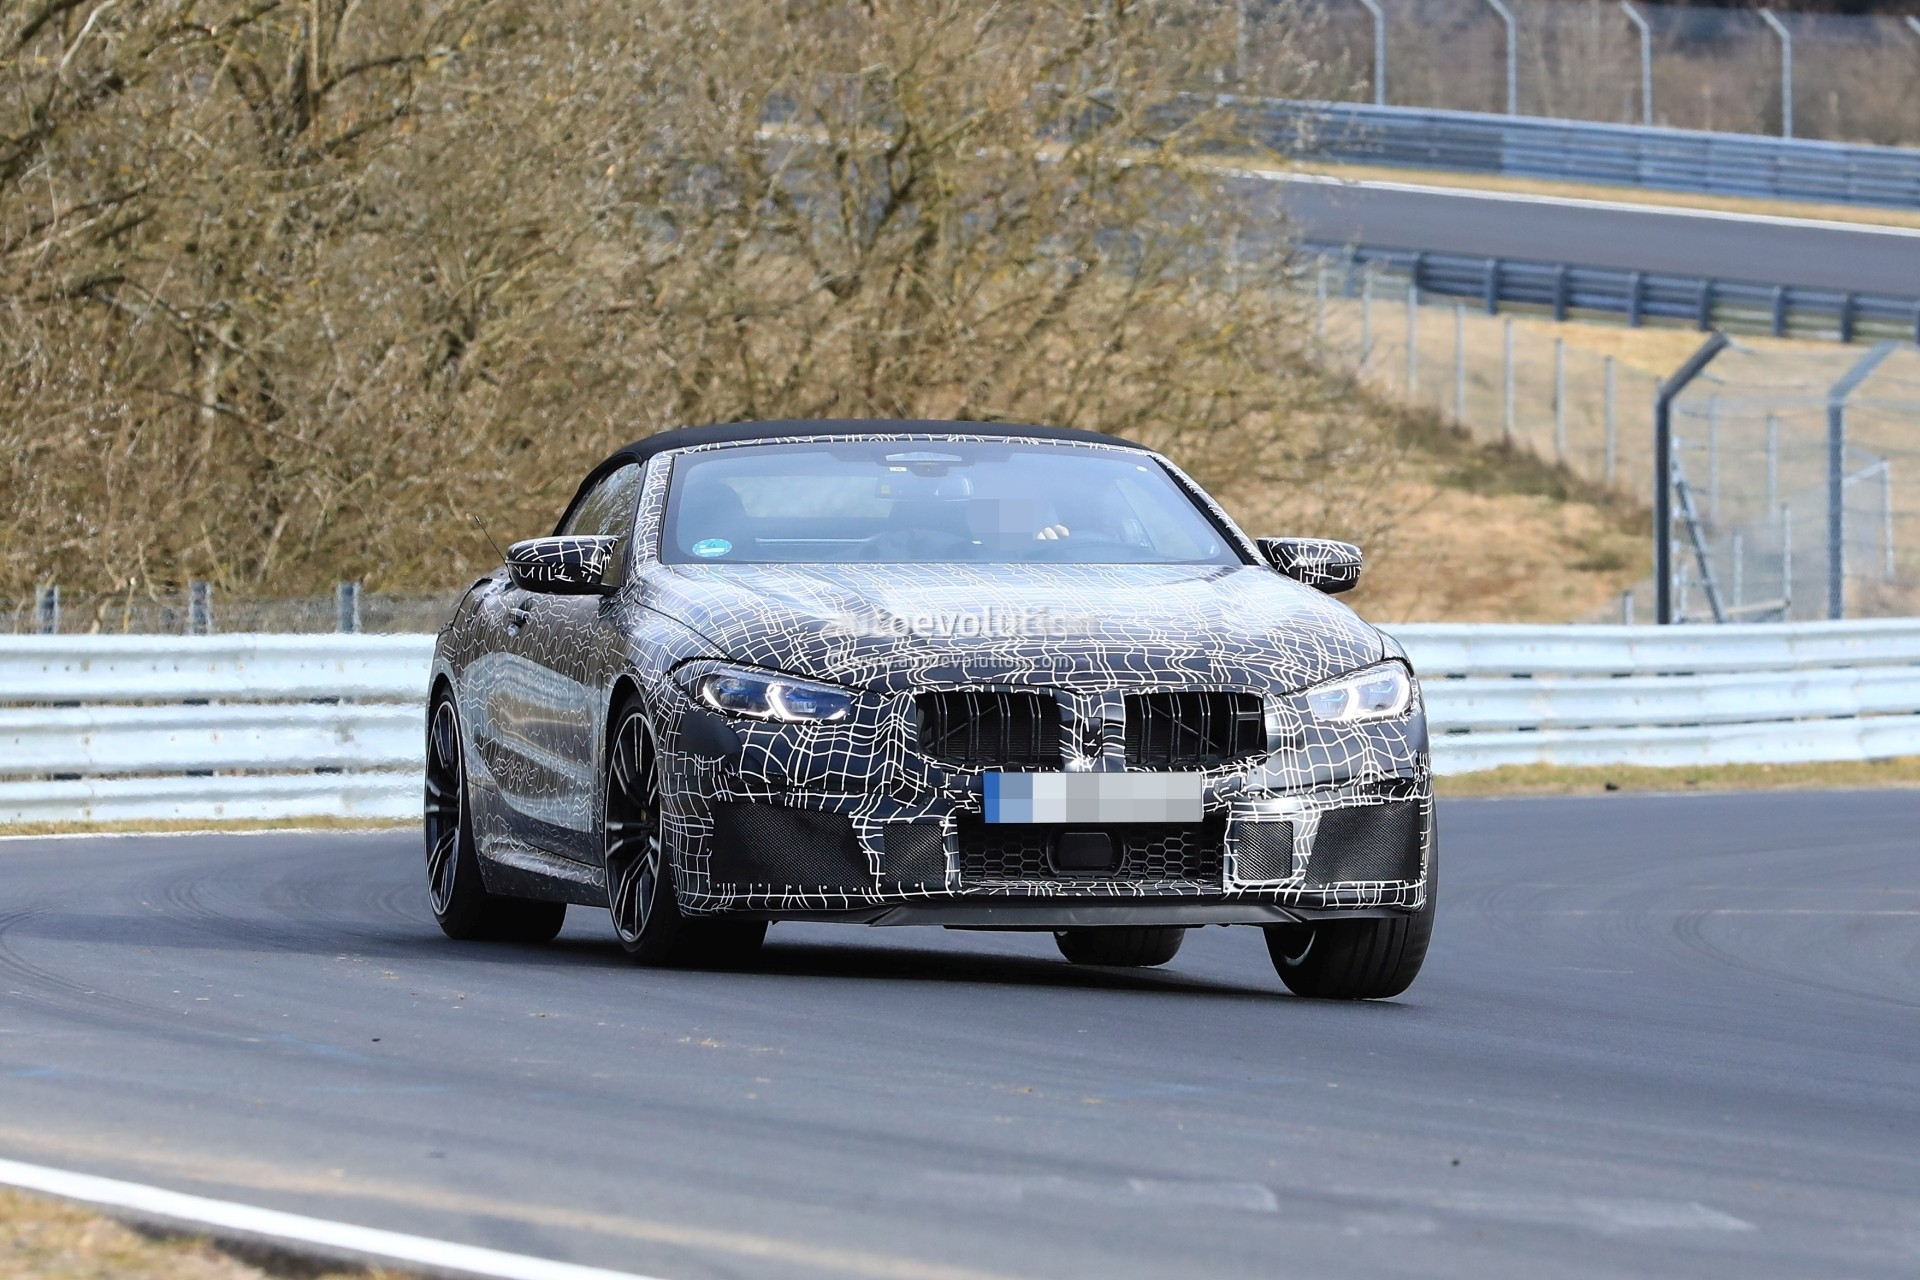 Spyshots 2019 Bmw M8 Coupe And Cabriolet Nurburgring